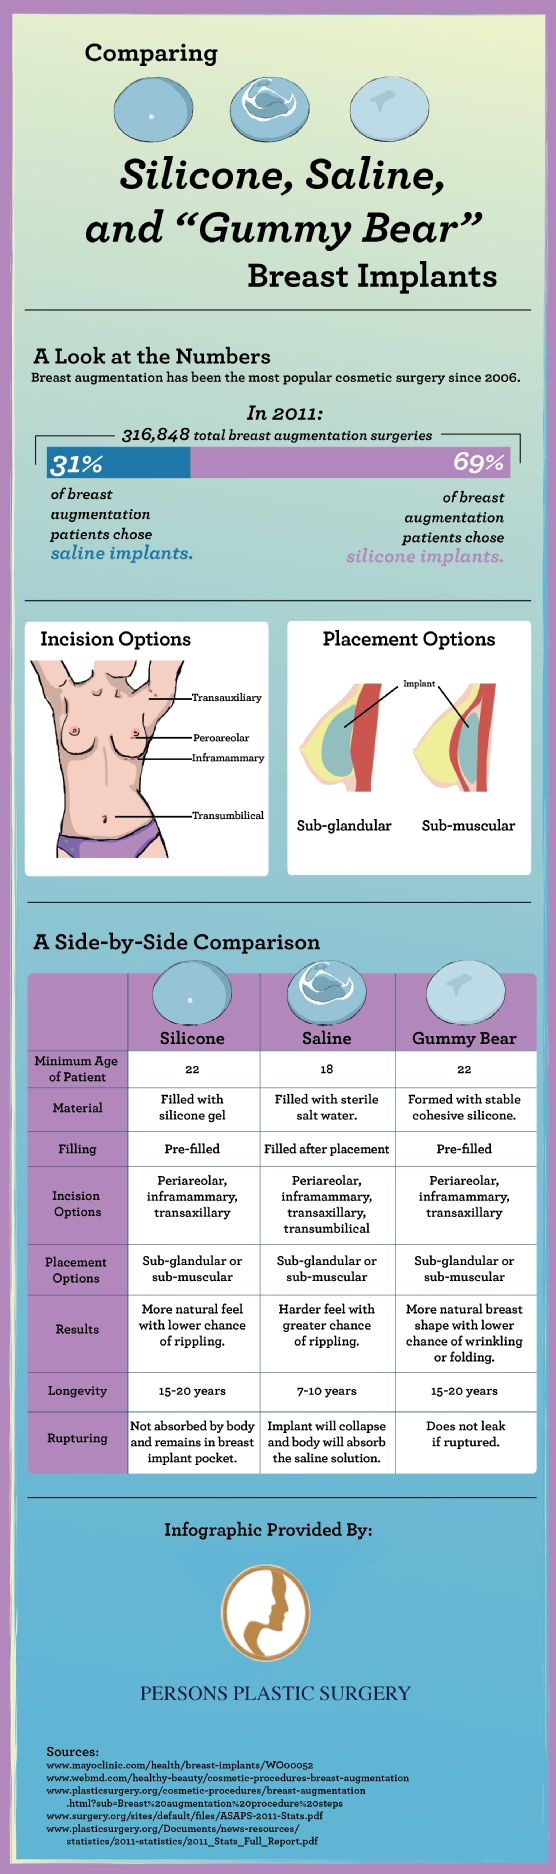 Silicone breast implants are filled with a silicone gel before placement, while saline breast implants are filled with sterile salt water after placem